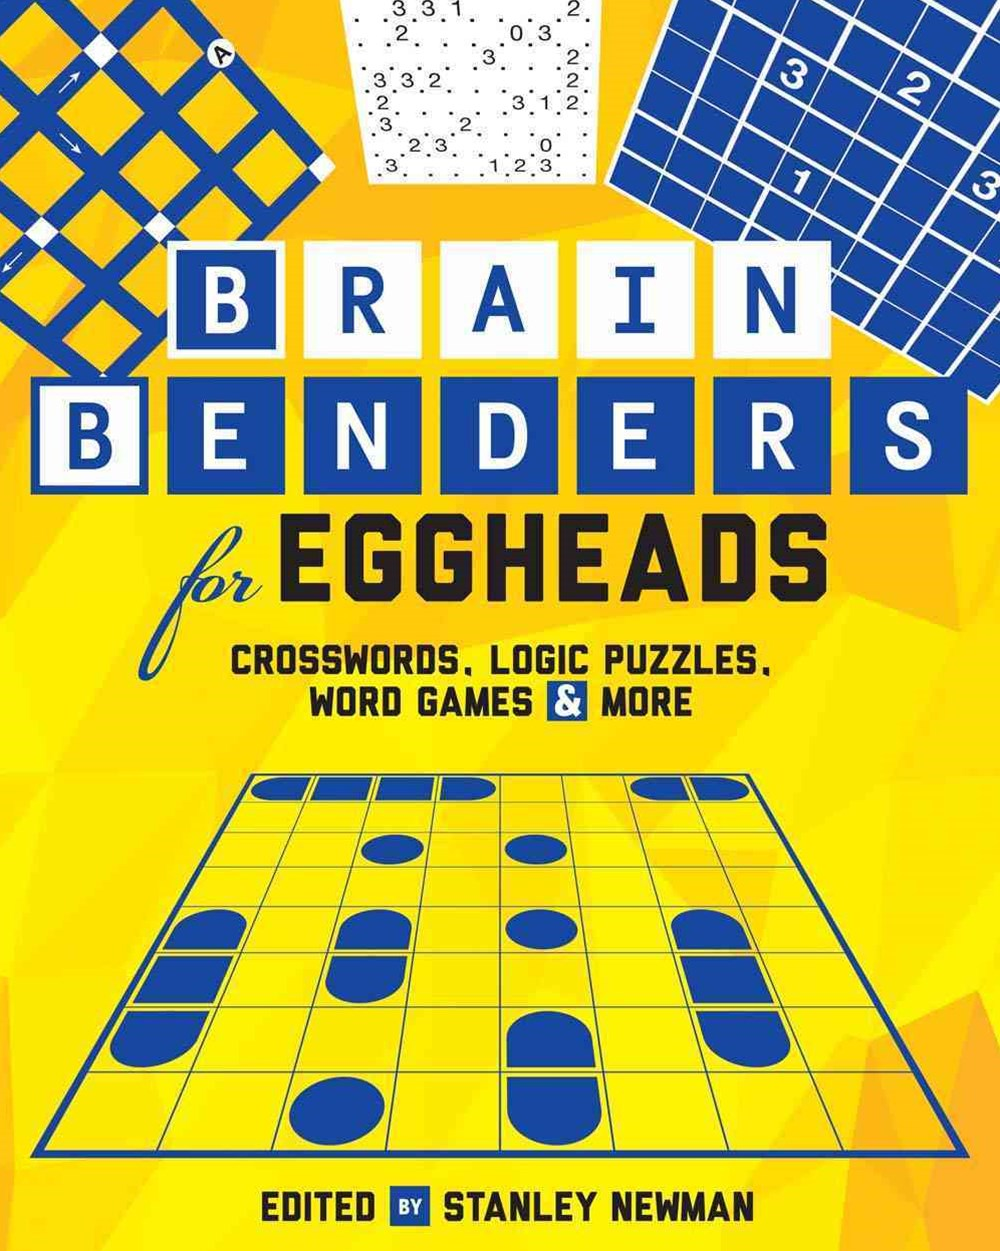 Brain Benders for Eggheads